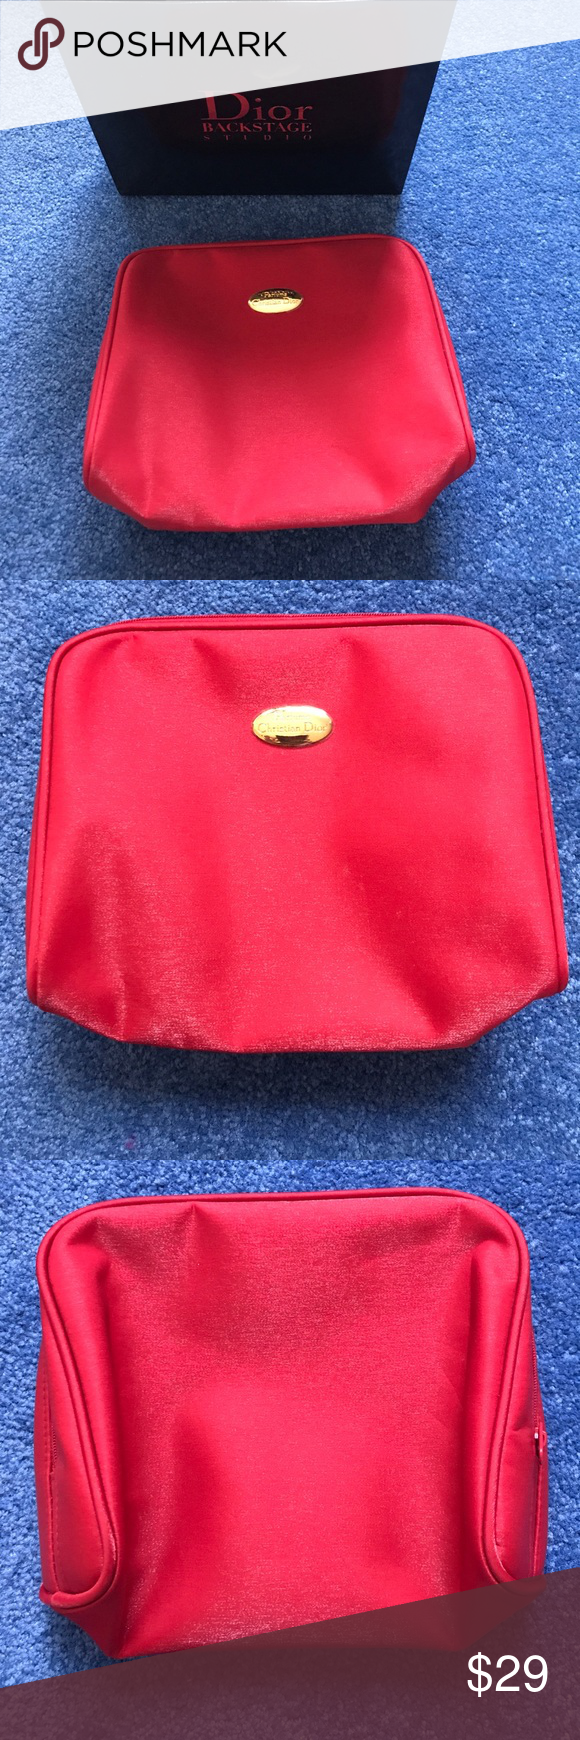 Christian Dior Makeup cosmetic Red Shimmer bag NEW